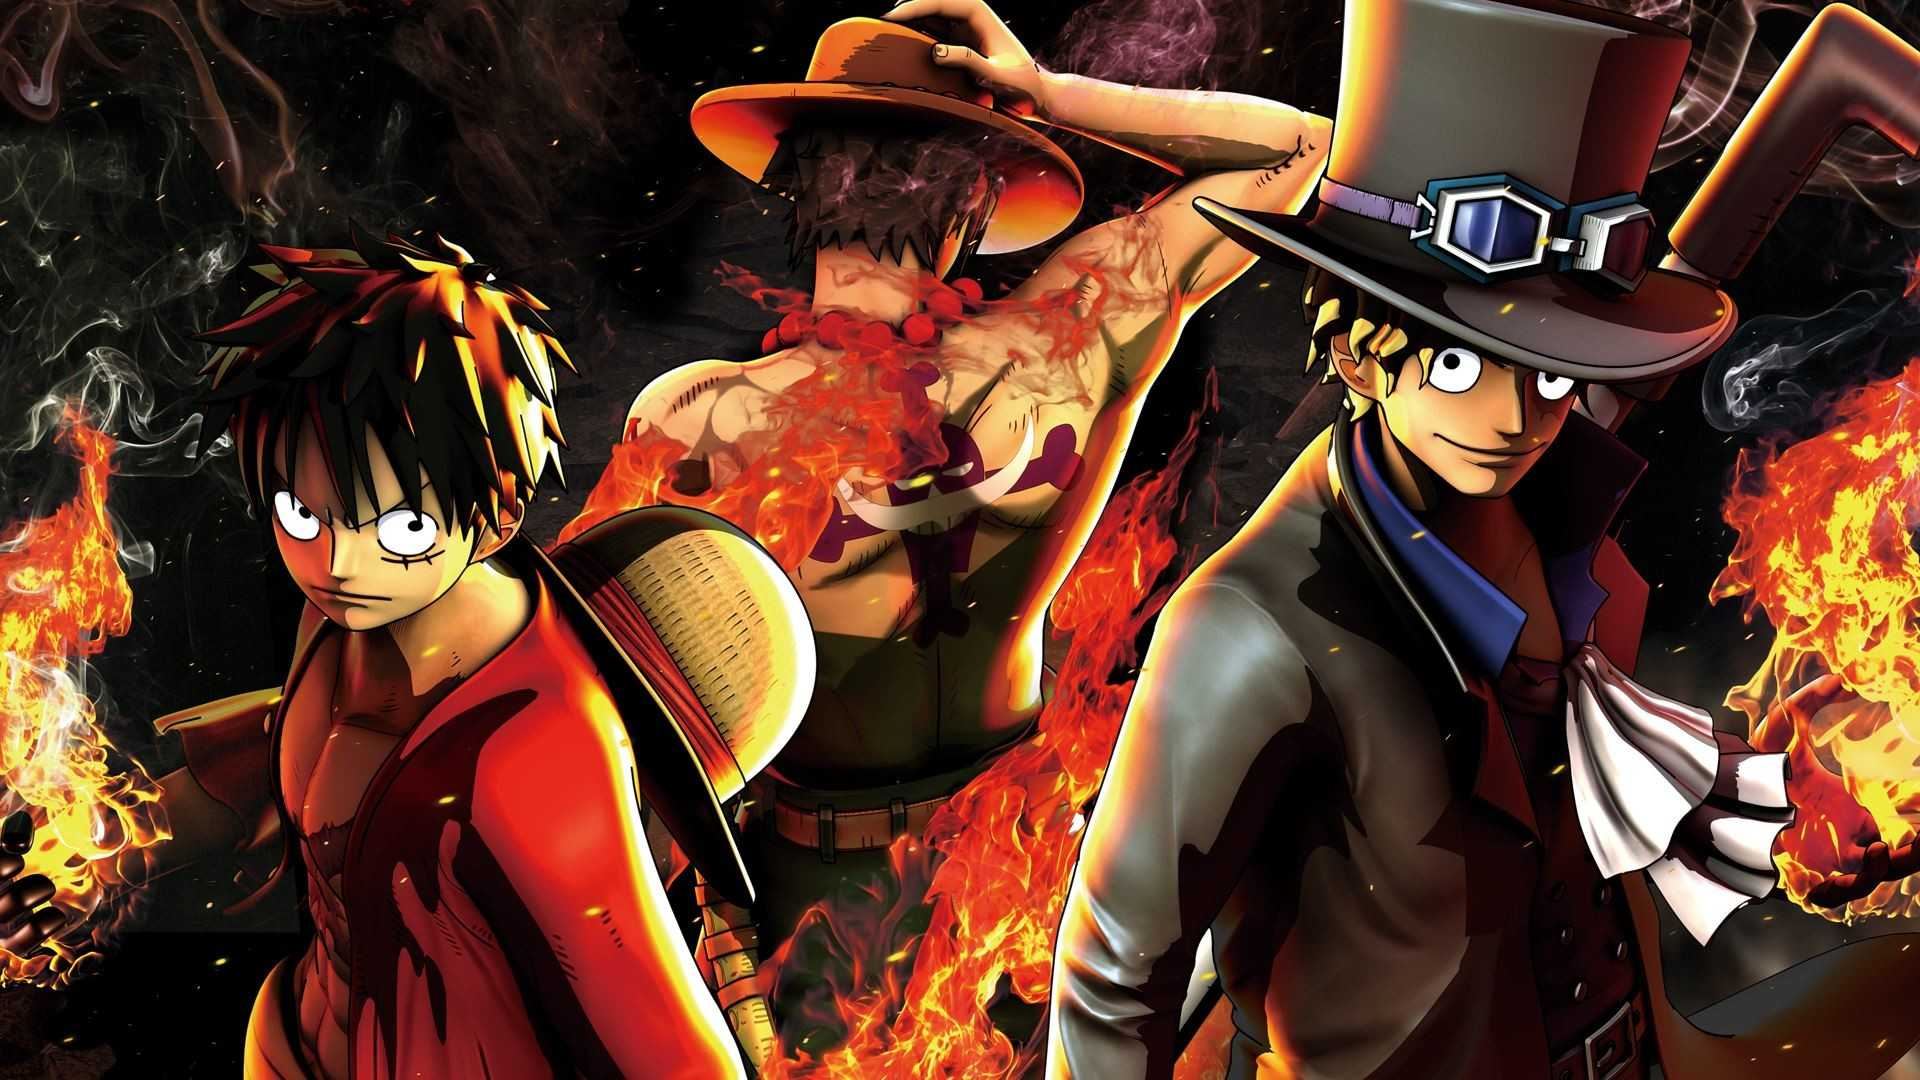 One Piece Best Wallpapers High Resolution Desktop Epic Hd Of Mobile